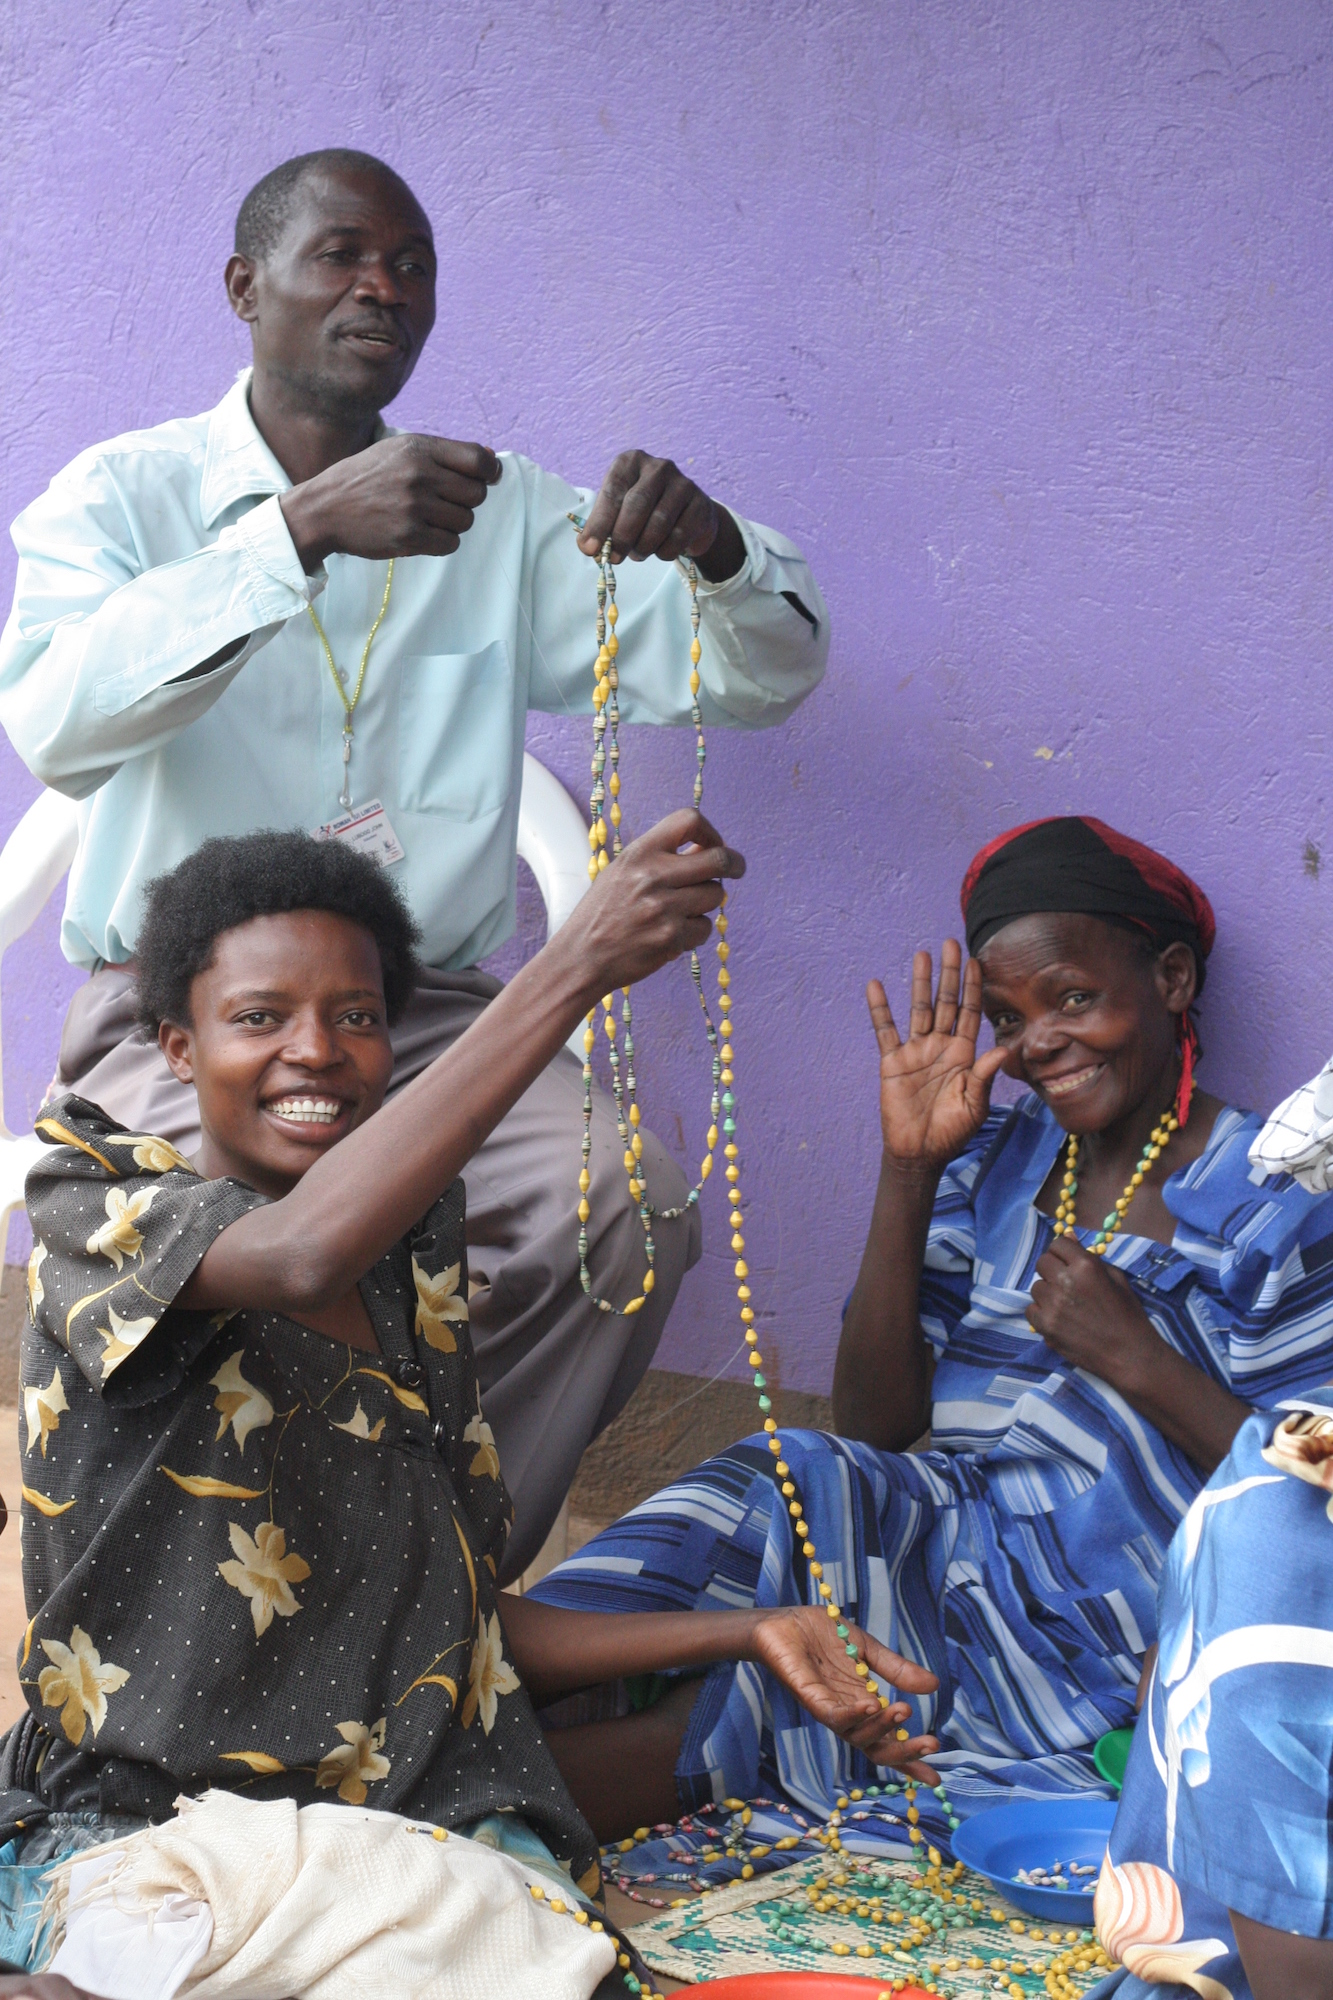 People holding strands of beads